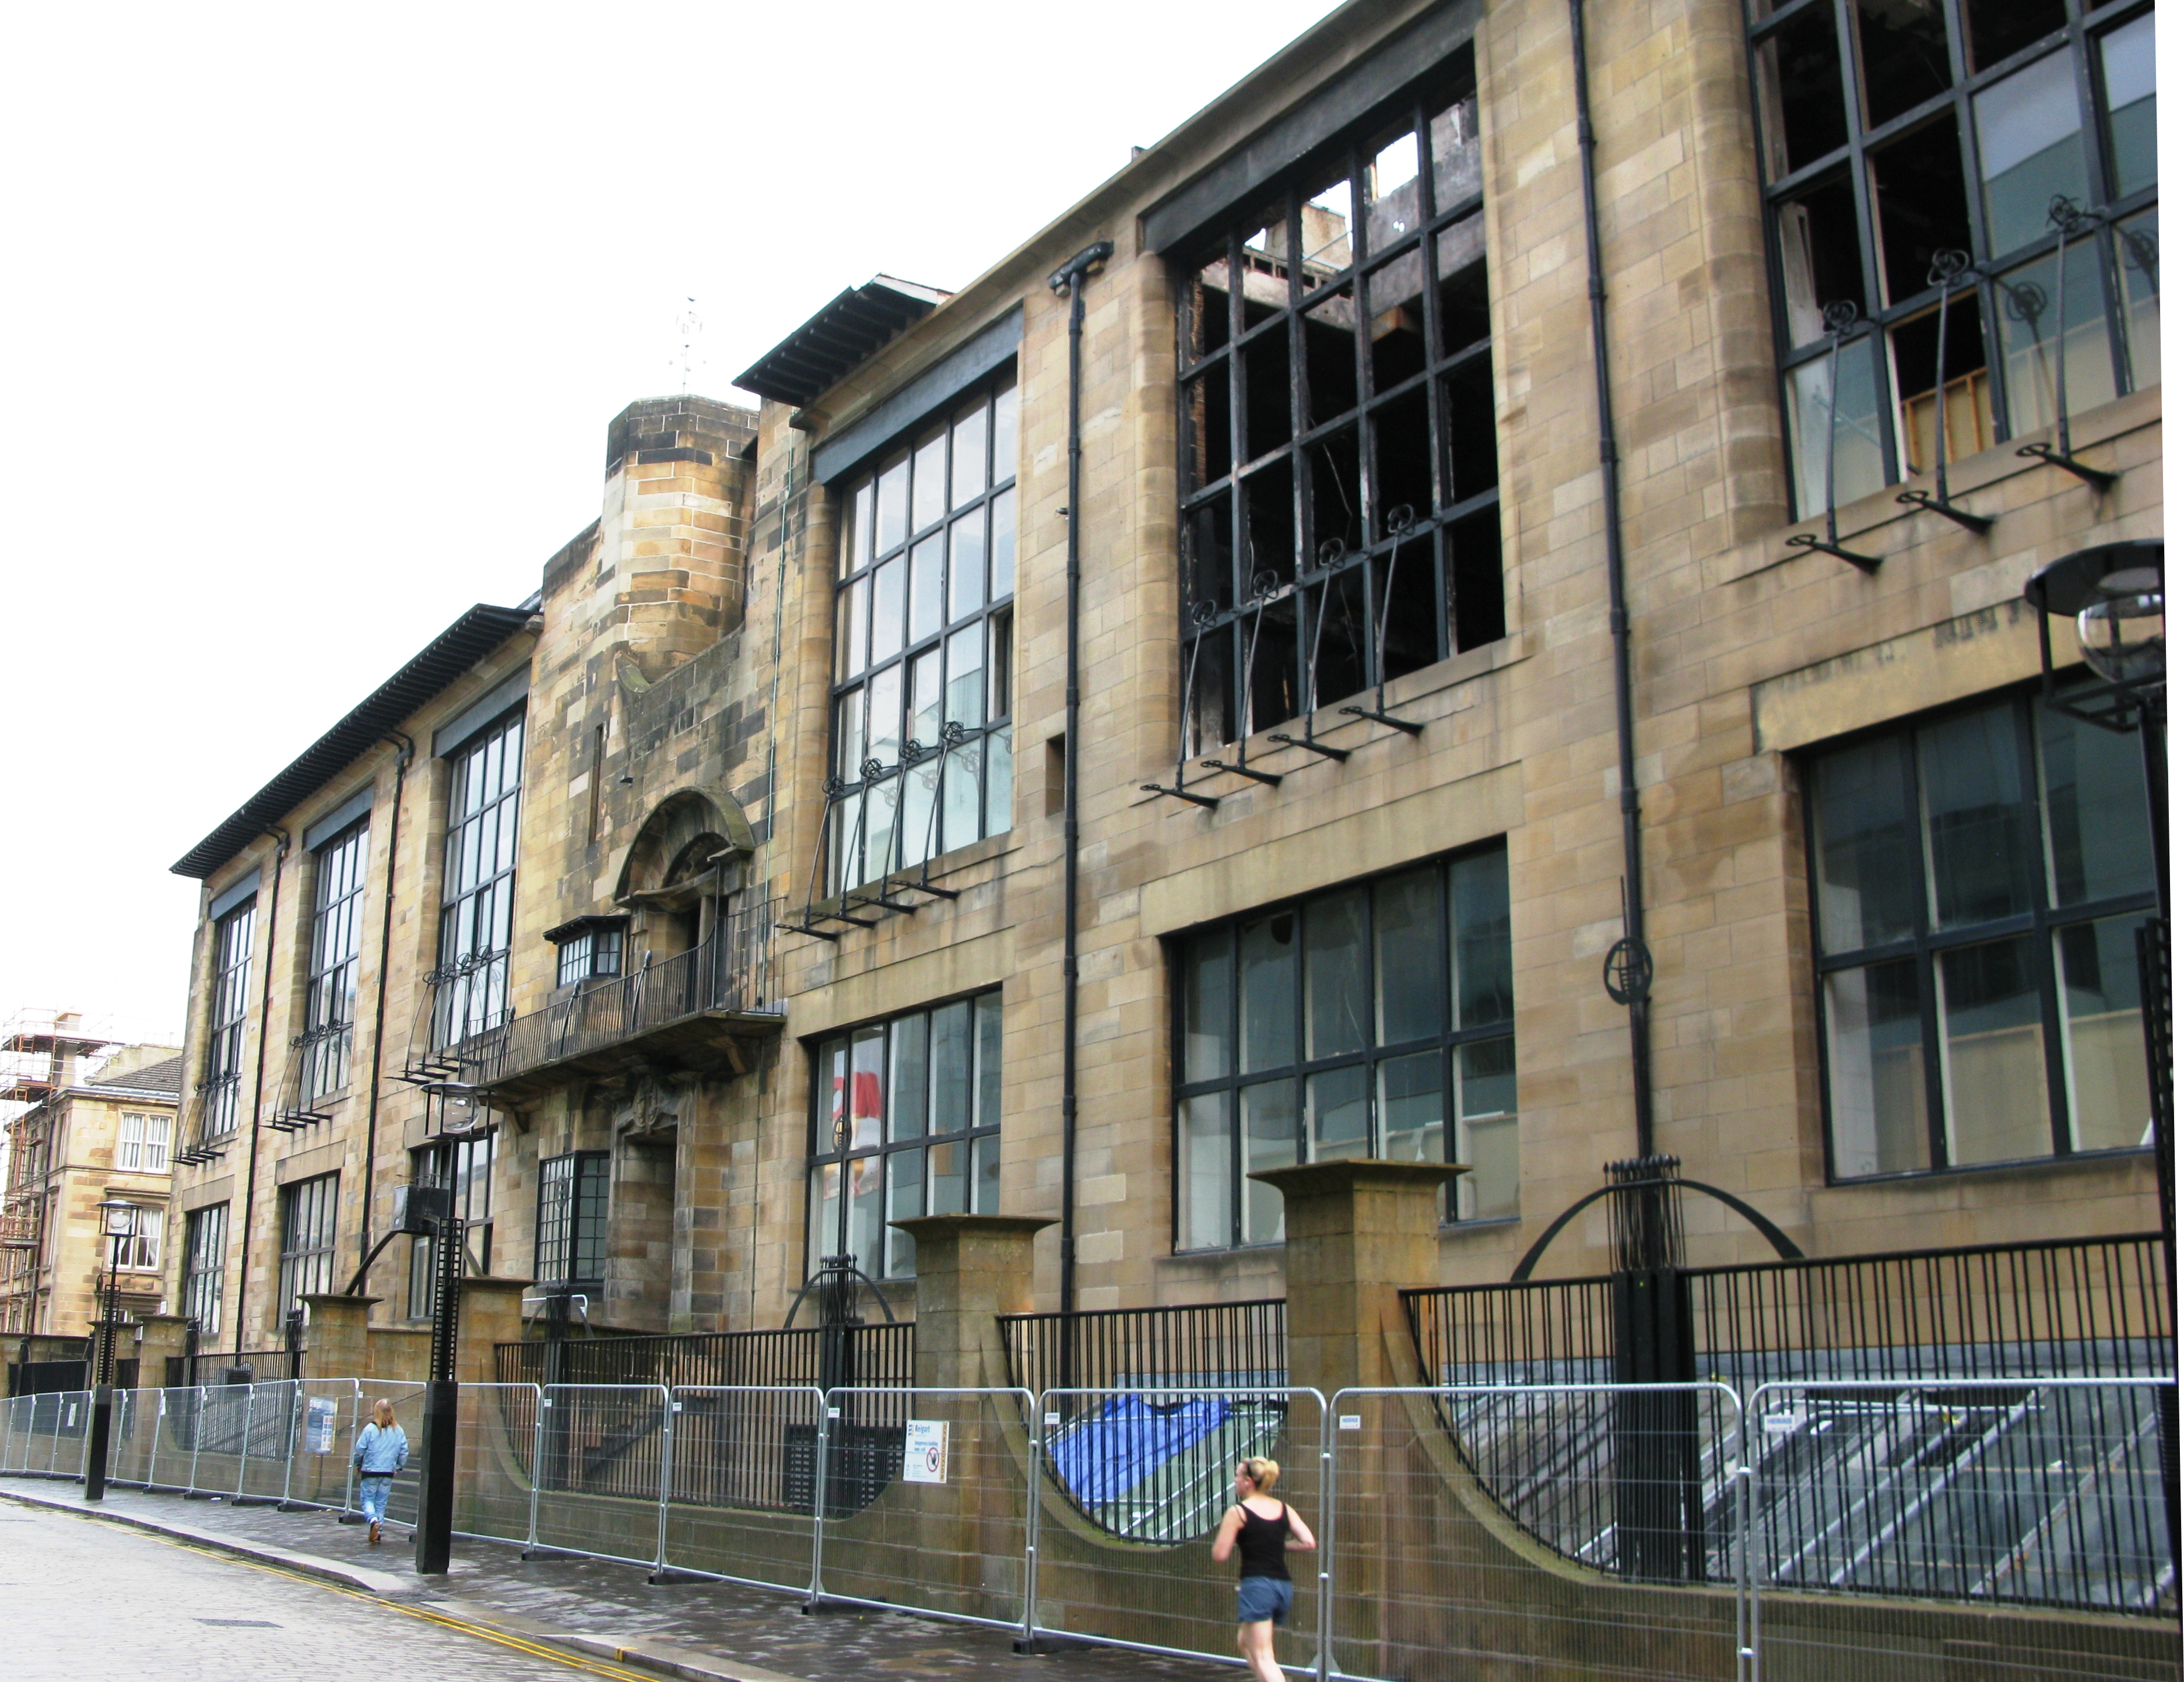 external image Wfm_glasgow_school_of_art.jpg